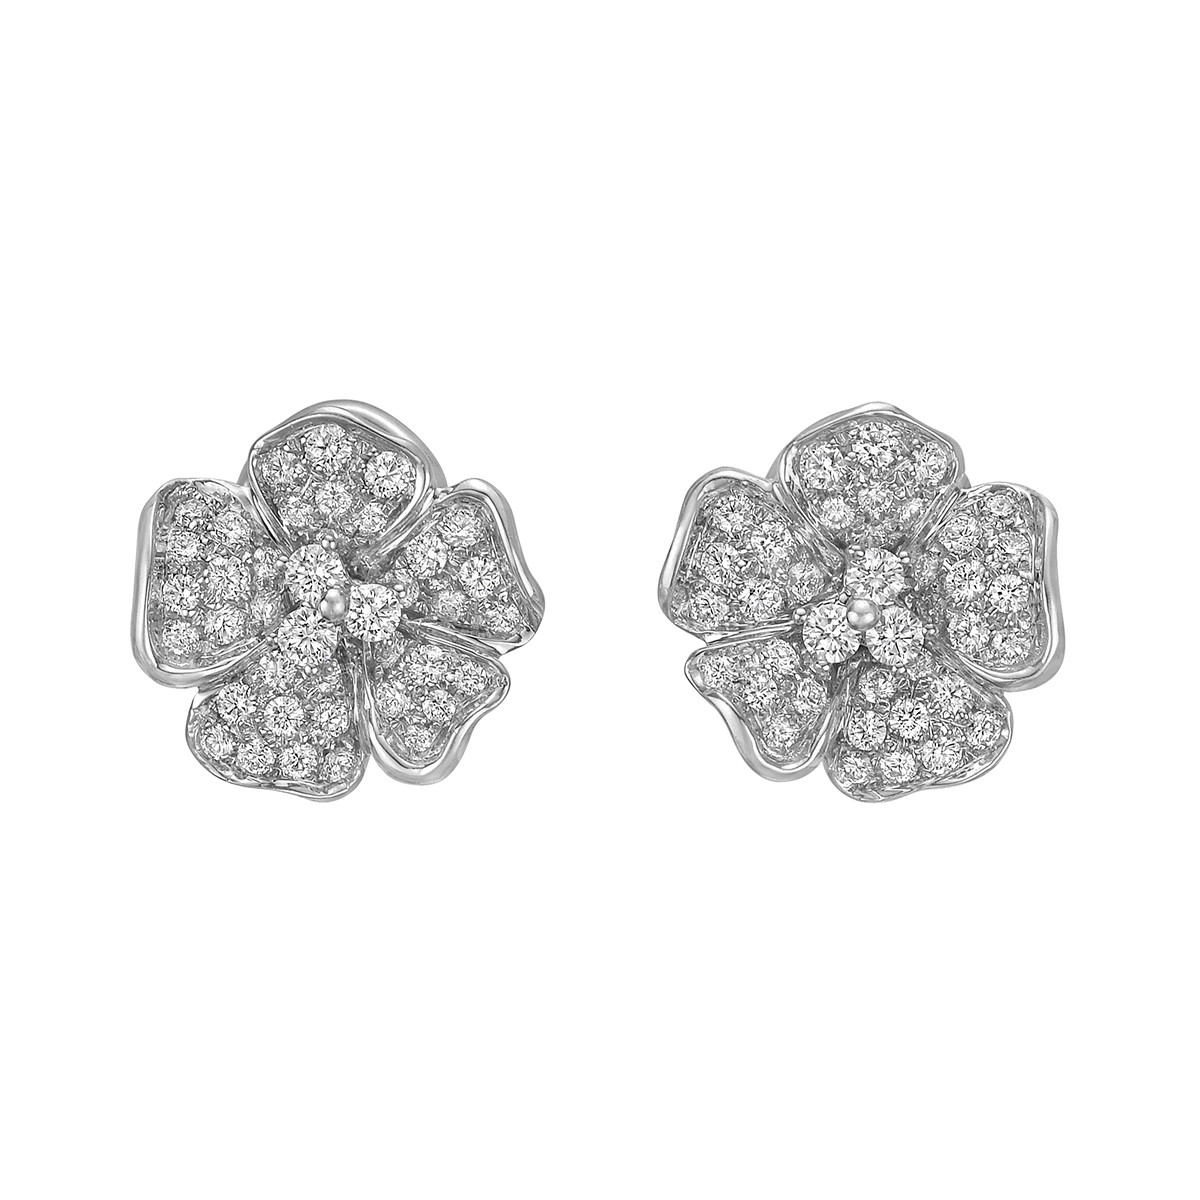 Small 18k White Gold & Diamond Flower Earrings